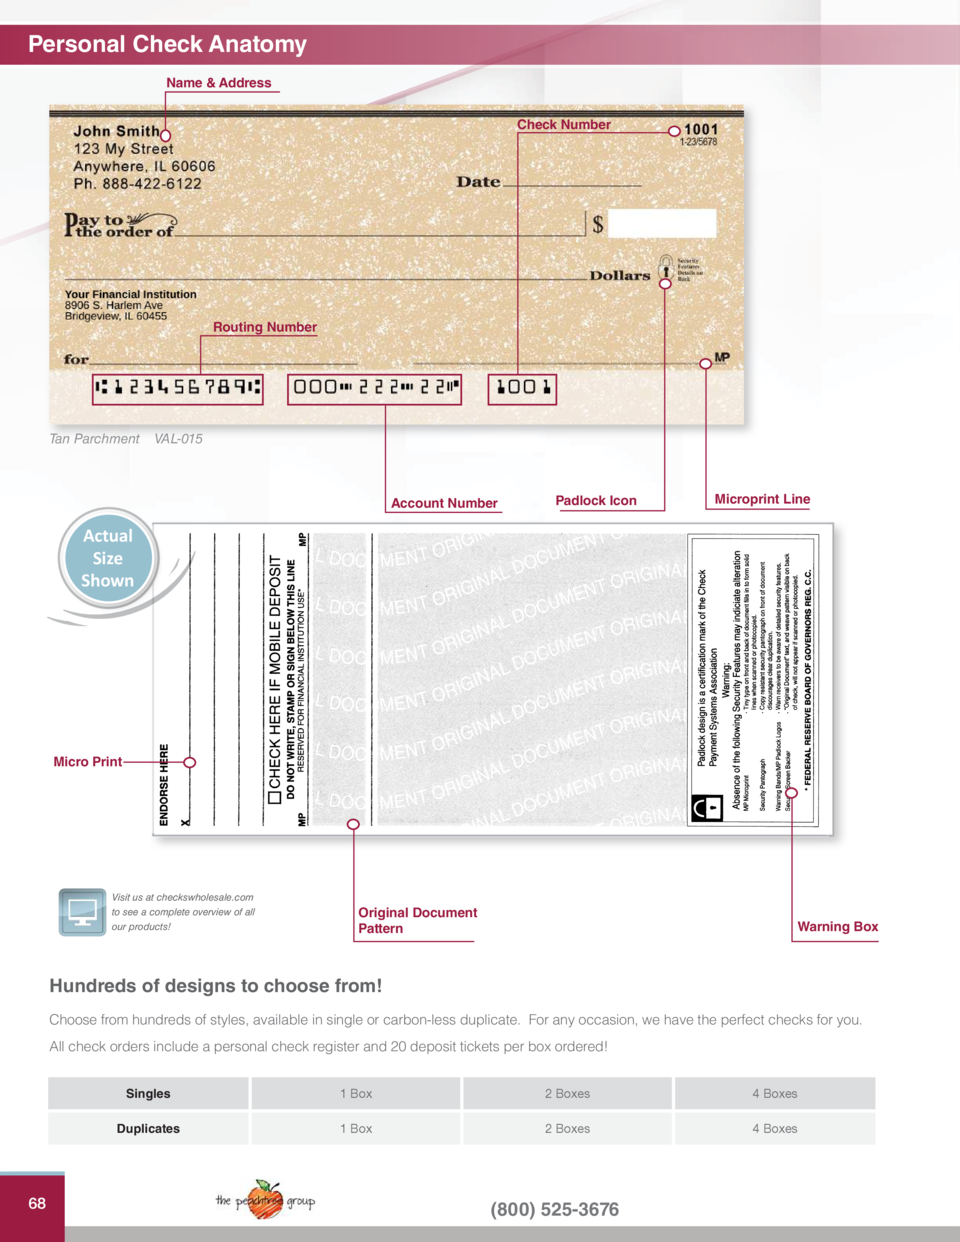 , Pink Safety 4 Box Duplicates Single /& Duplicate Options 400 Valued Price Safety Personal Checks